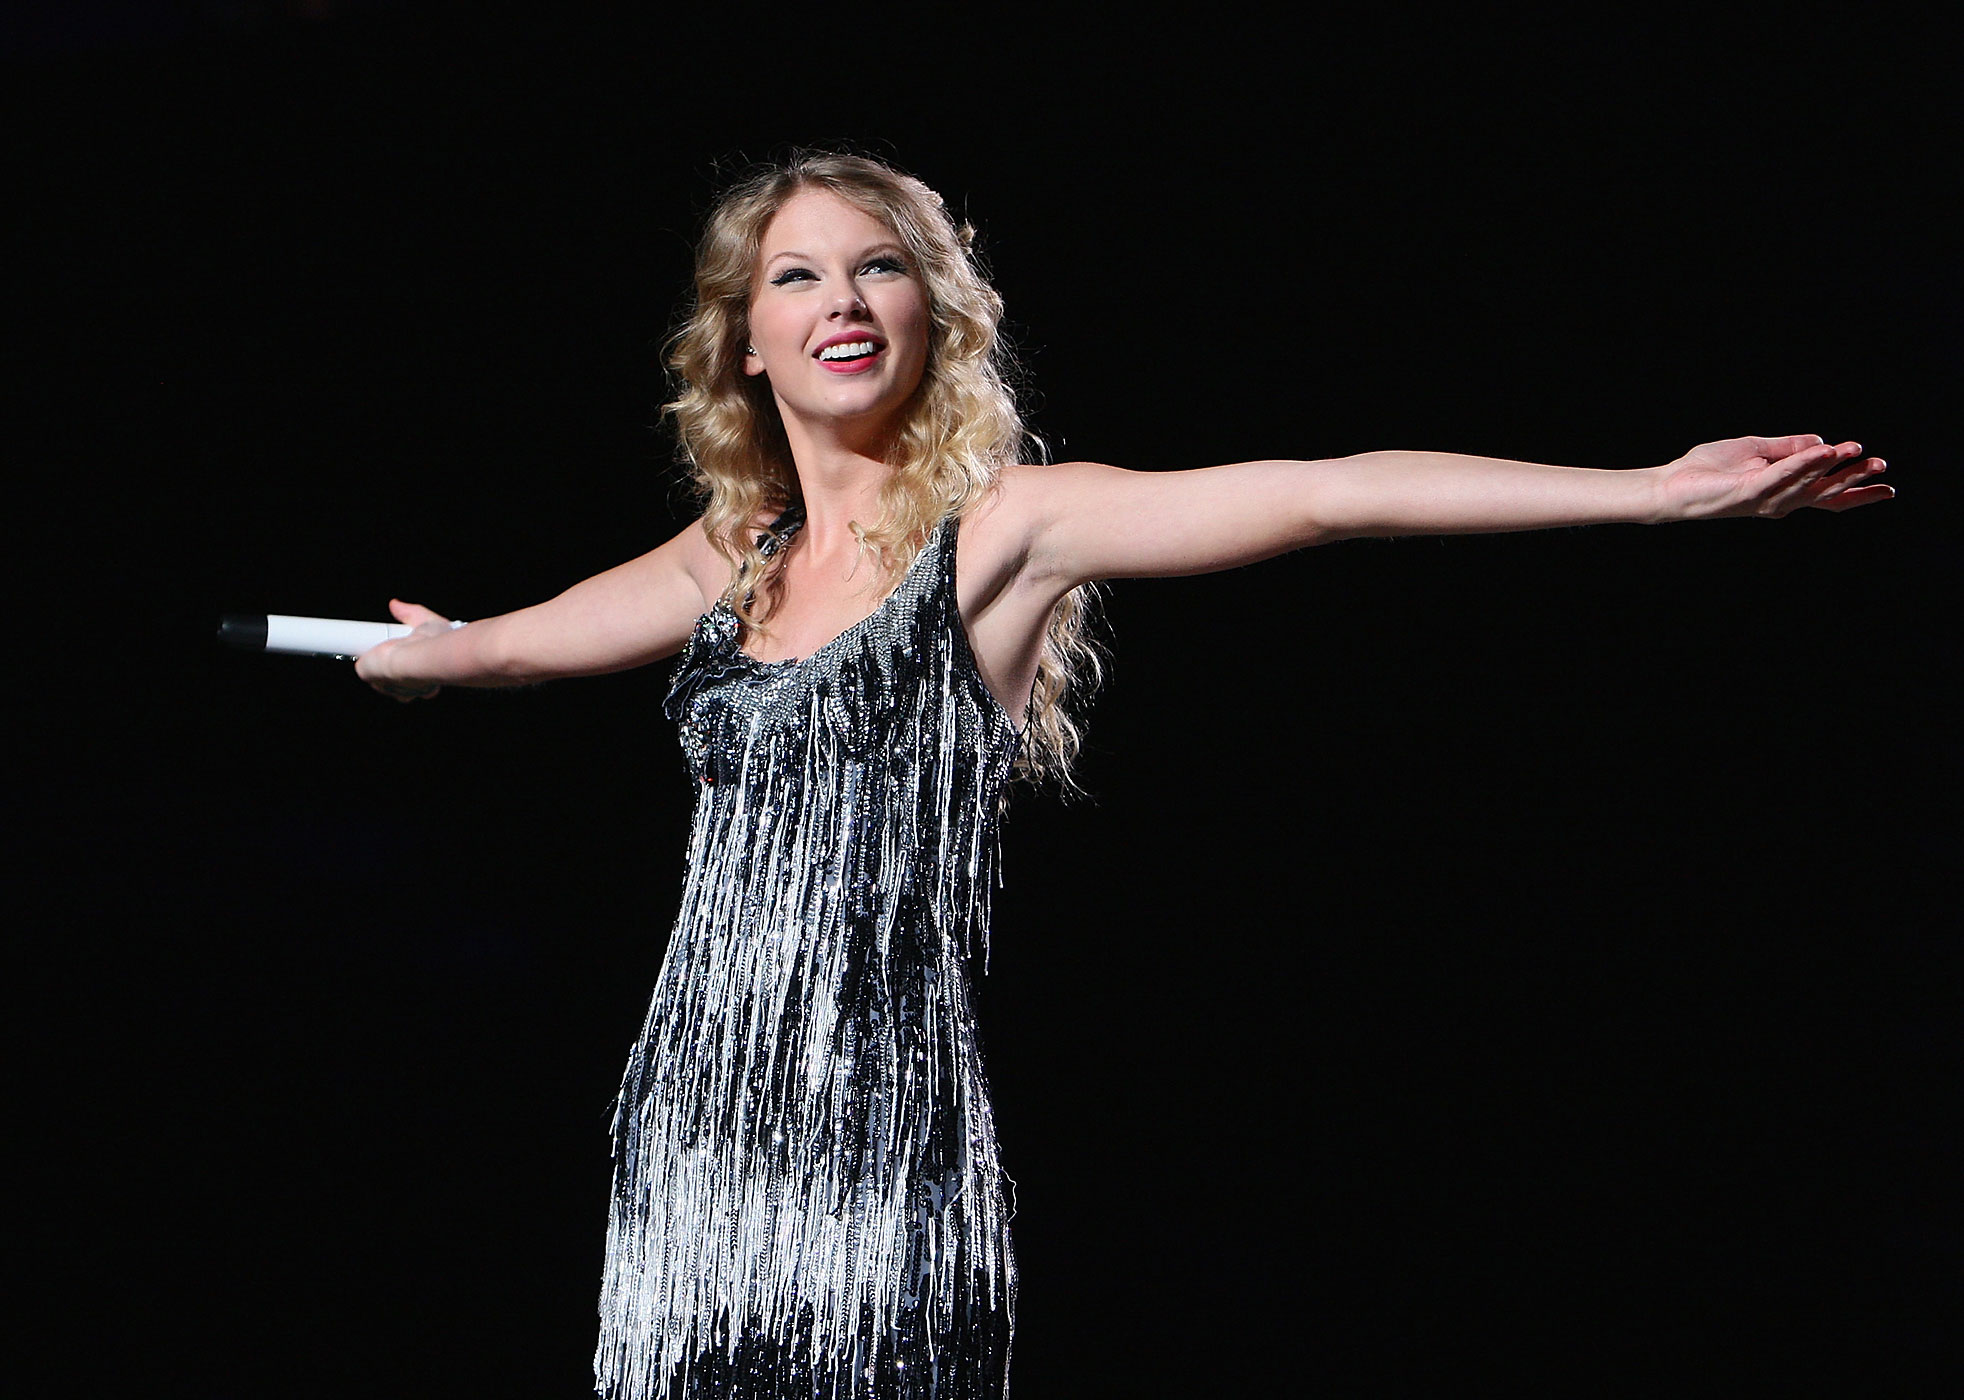 Taylor Swift performs at Madison Square Garden in New York City in 2009.